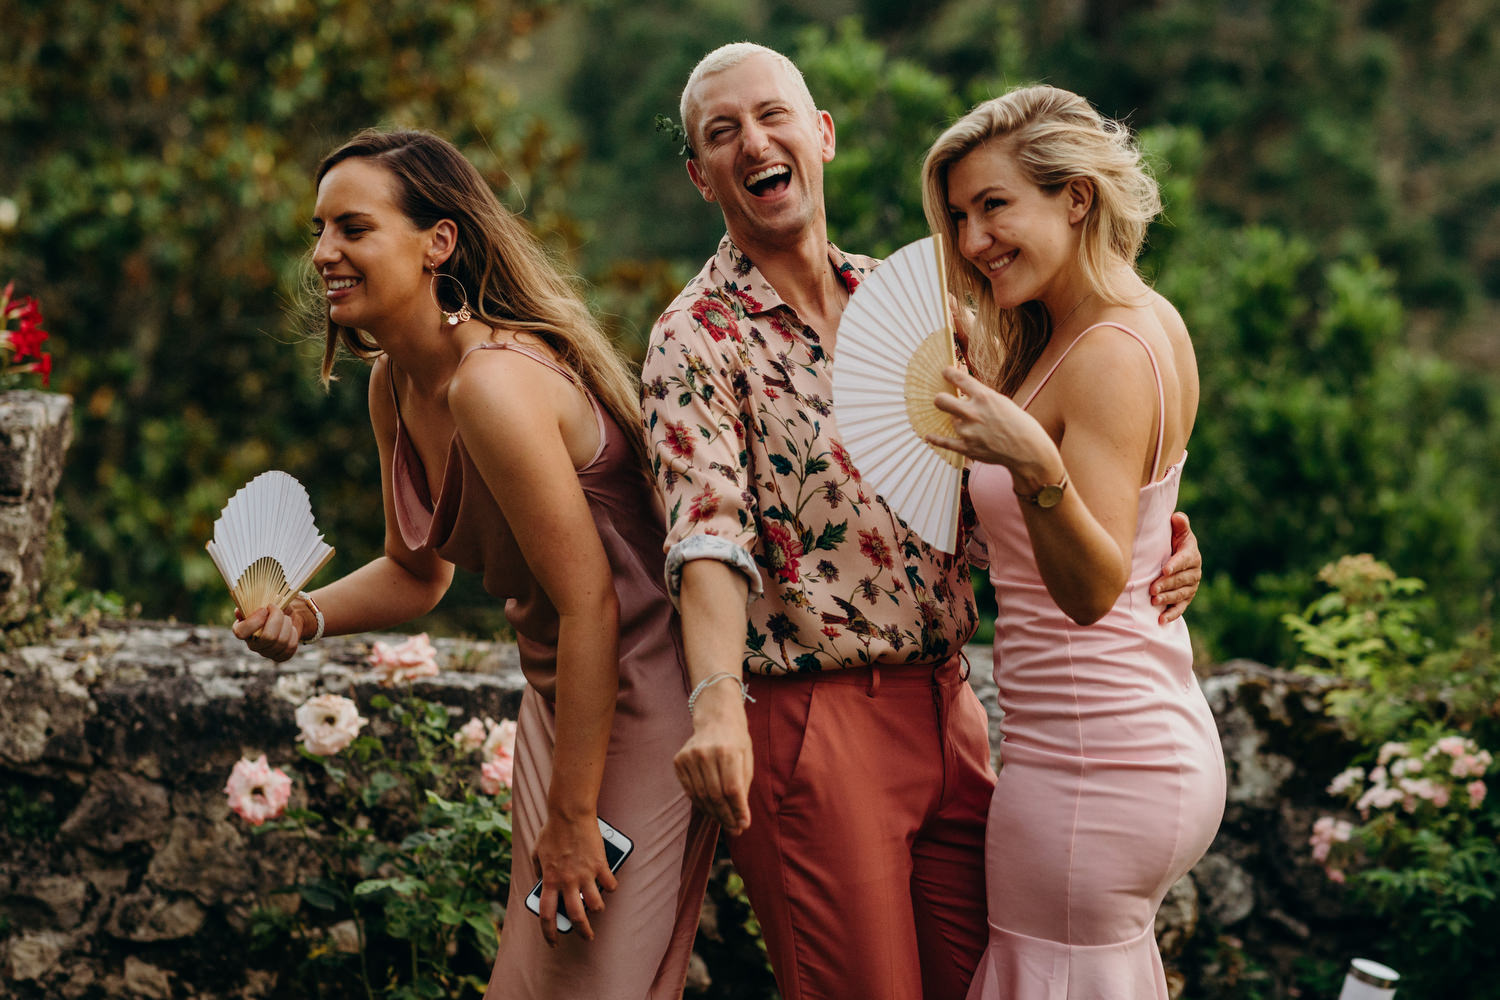 guests cooling down with fans at hot wedding